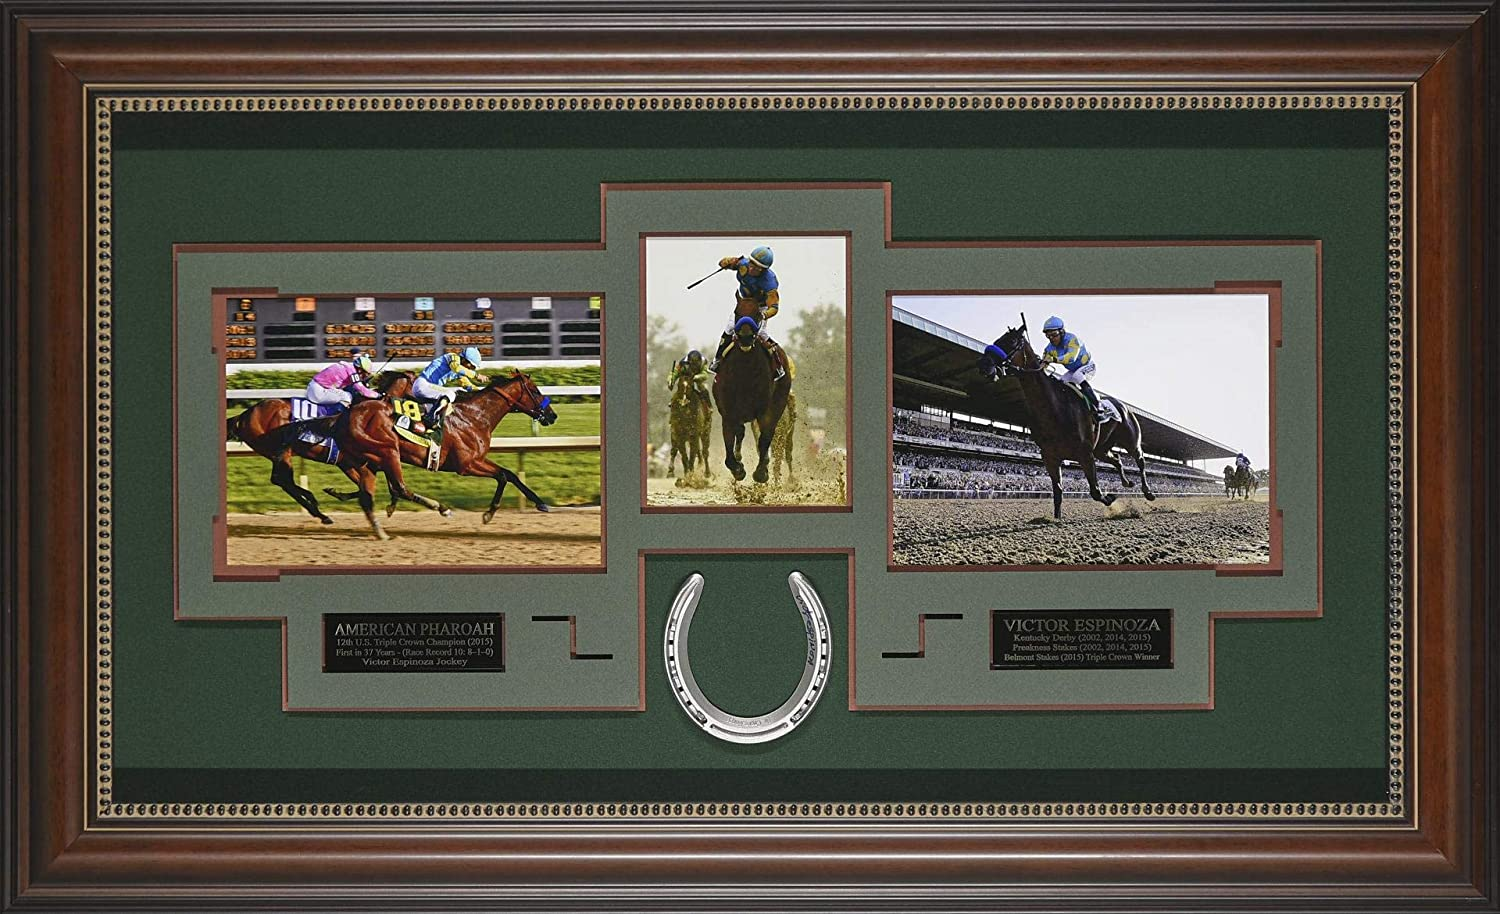 American Pharaoh – Victor Espinoza Signed Display. 43×26 - Horse Racing Plaques, and Collages